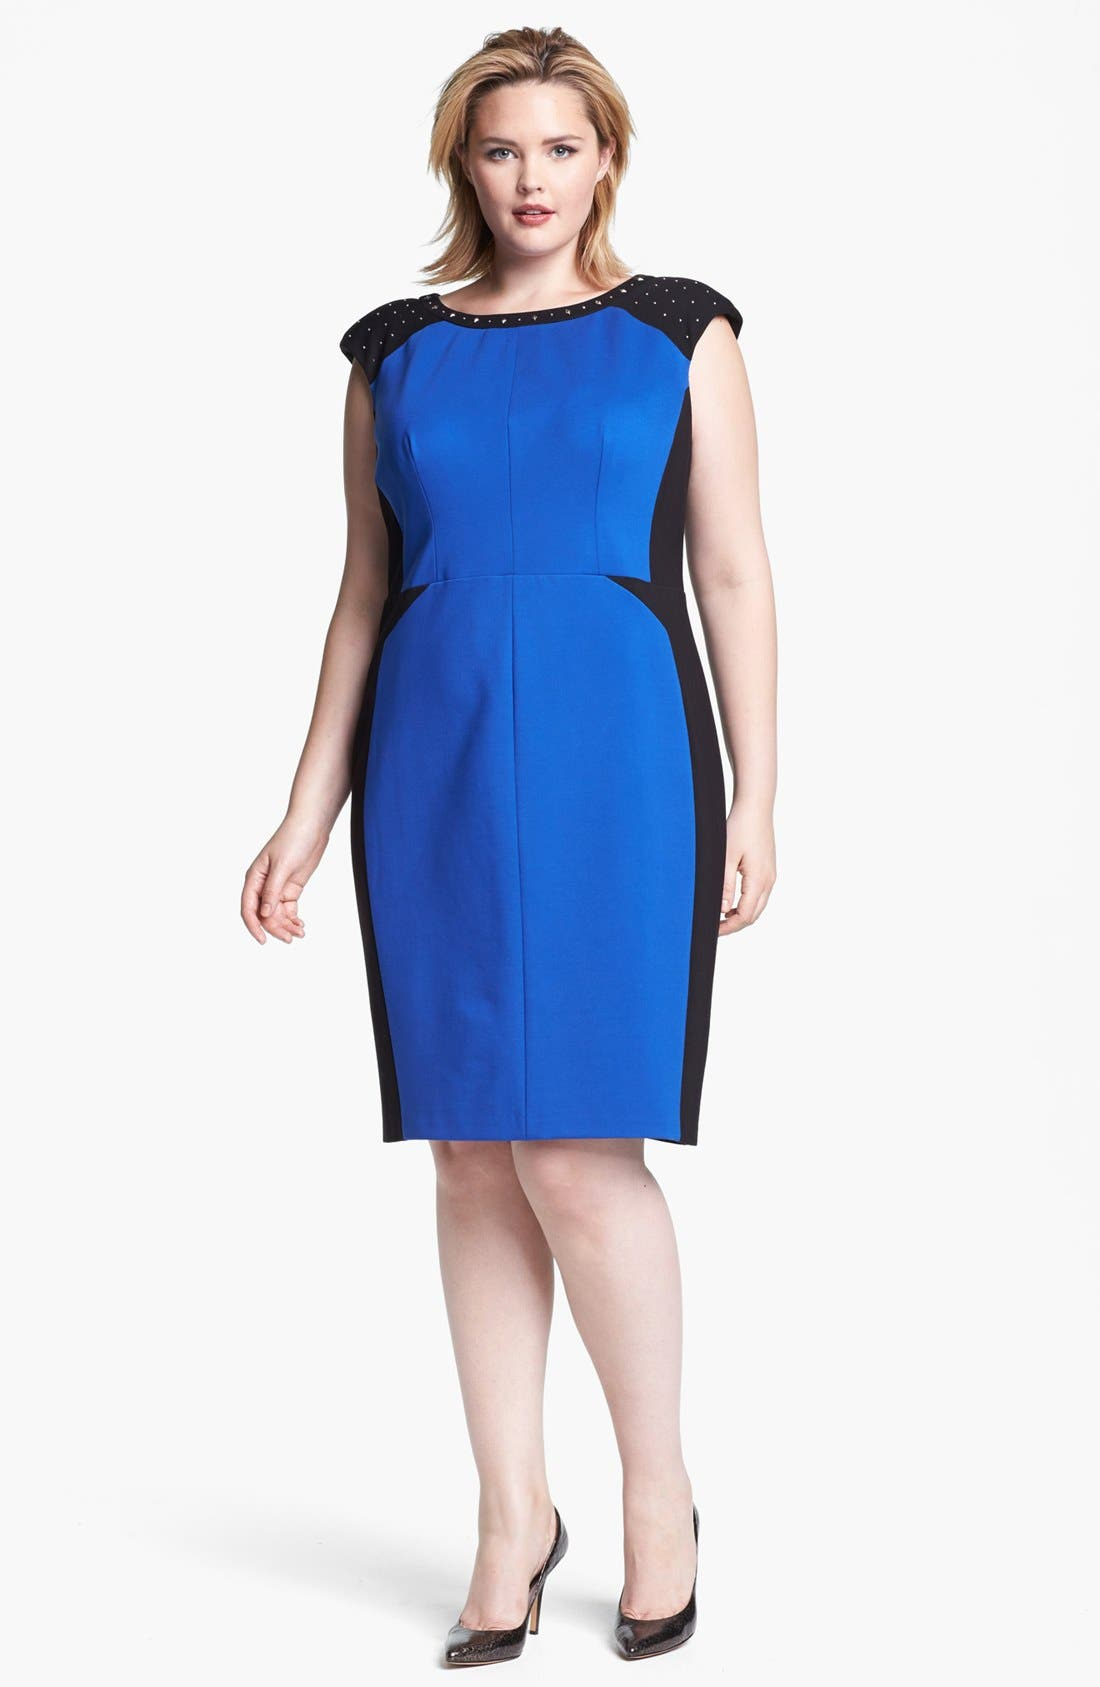 Main Image - ABS Luxury Collection Studded Colorblock Sheath Dress (Plus Size)